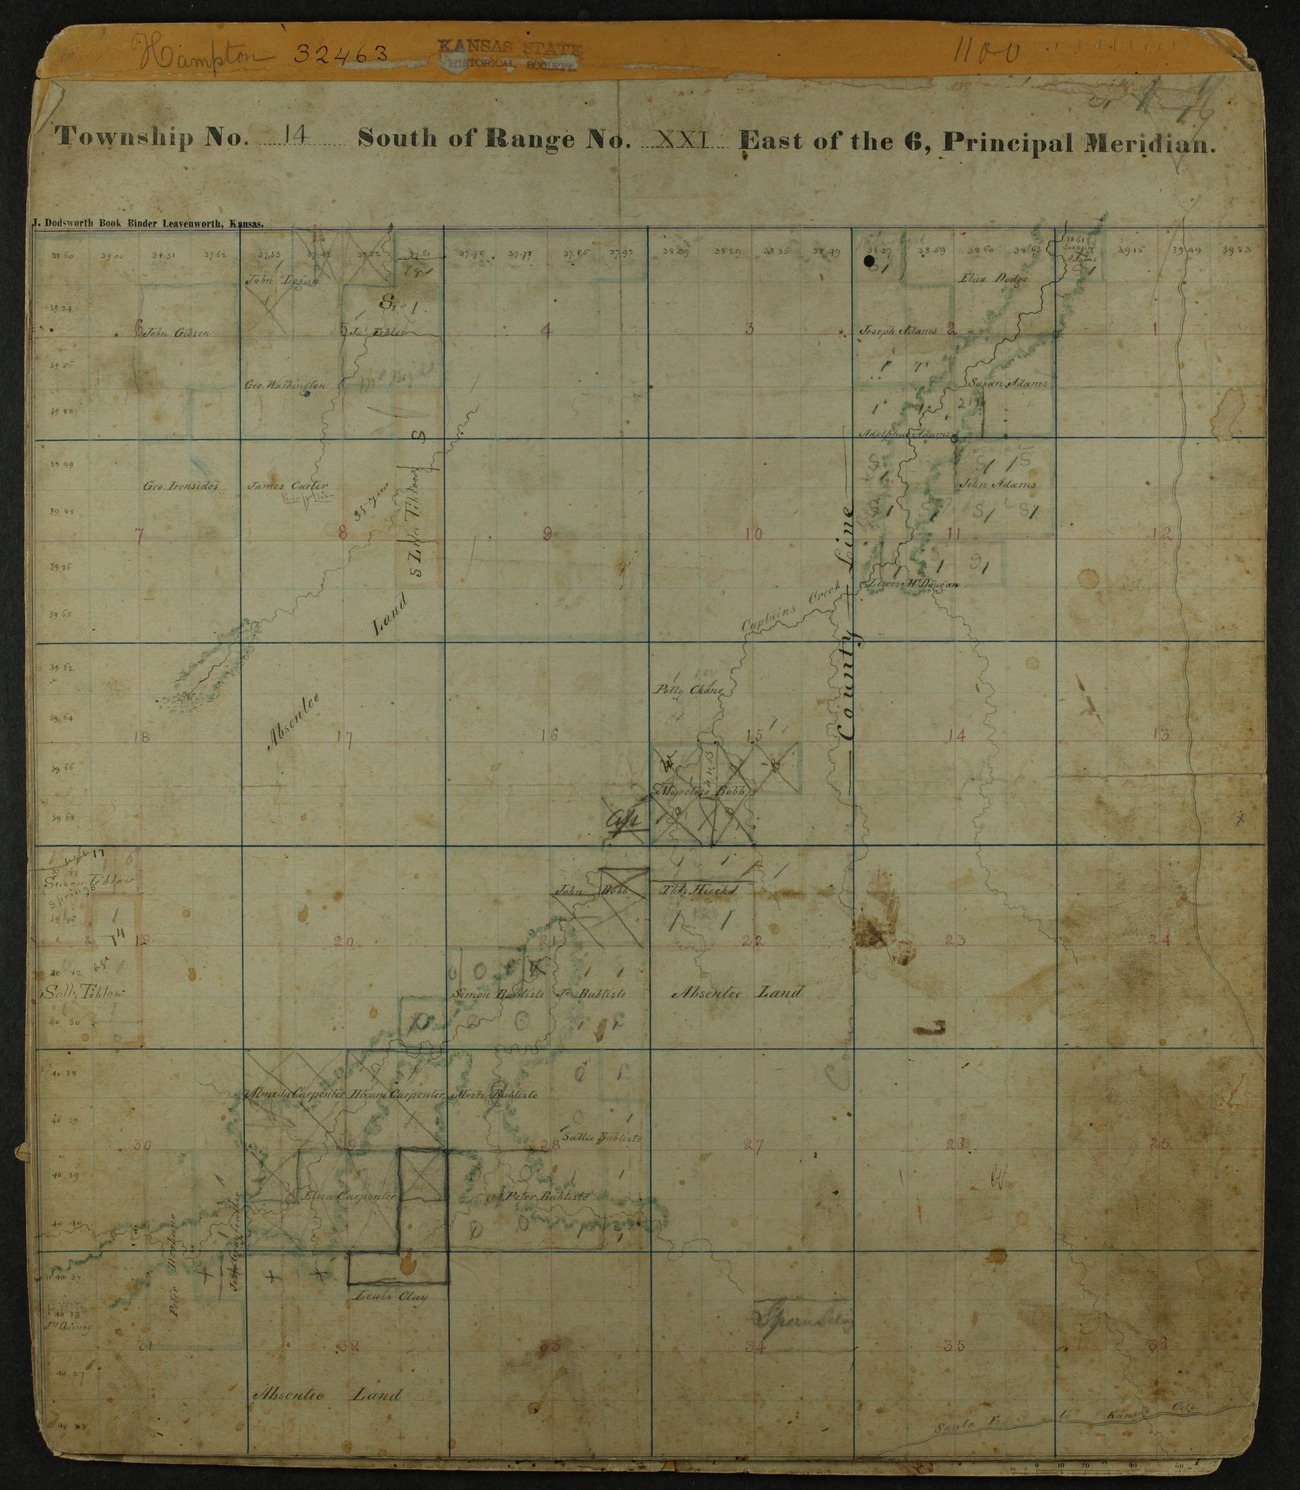 Shawnee Indian reservation plat maps of 1854 - 8